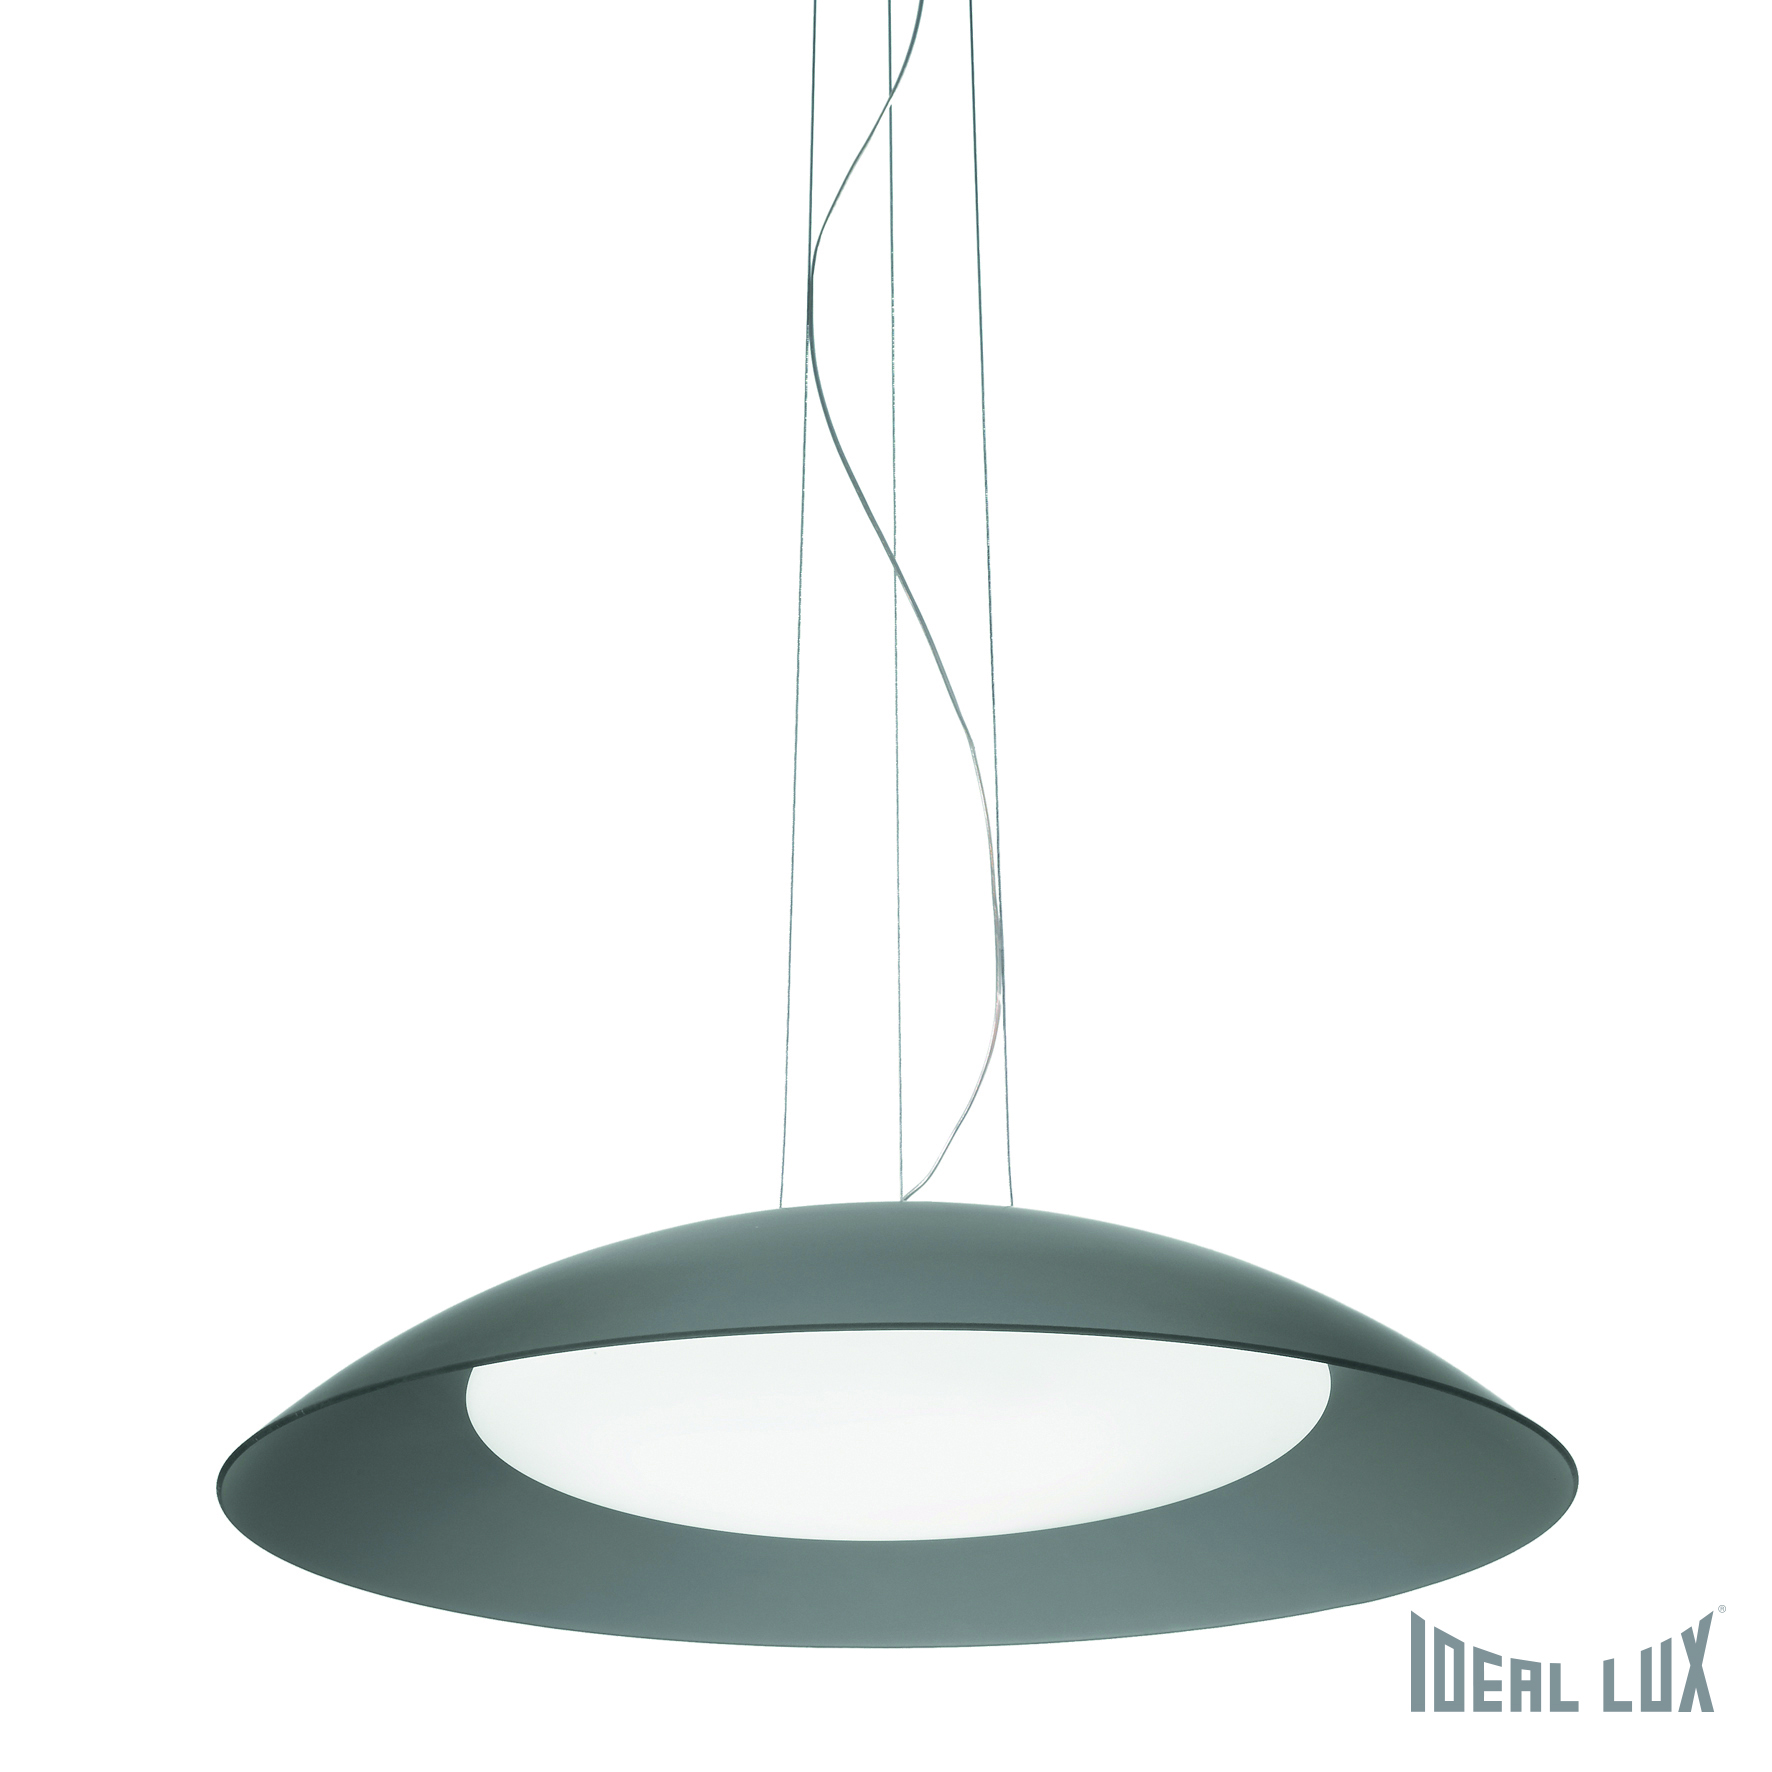 Светильник подвесной Ideal Lux Lena LENA SP3 D64 GRIGIO ideal lux люстра ideal lux le roy sp3